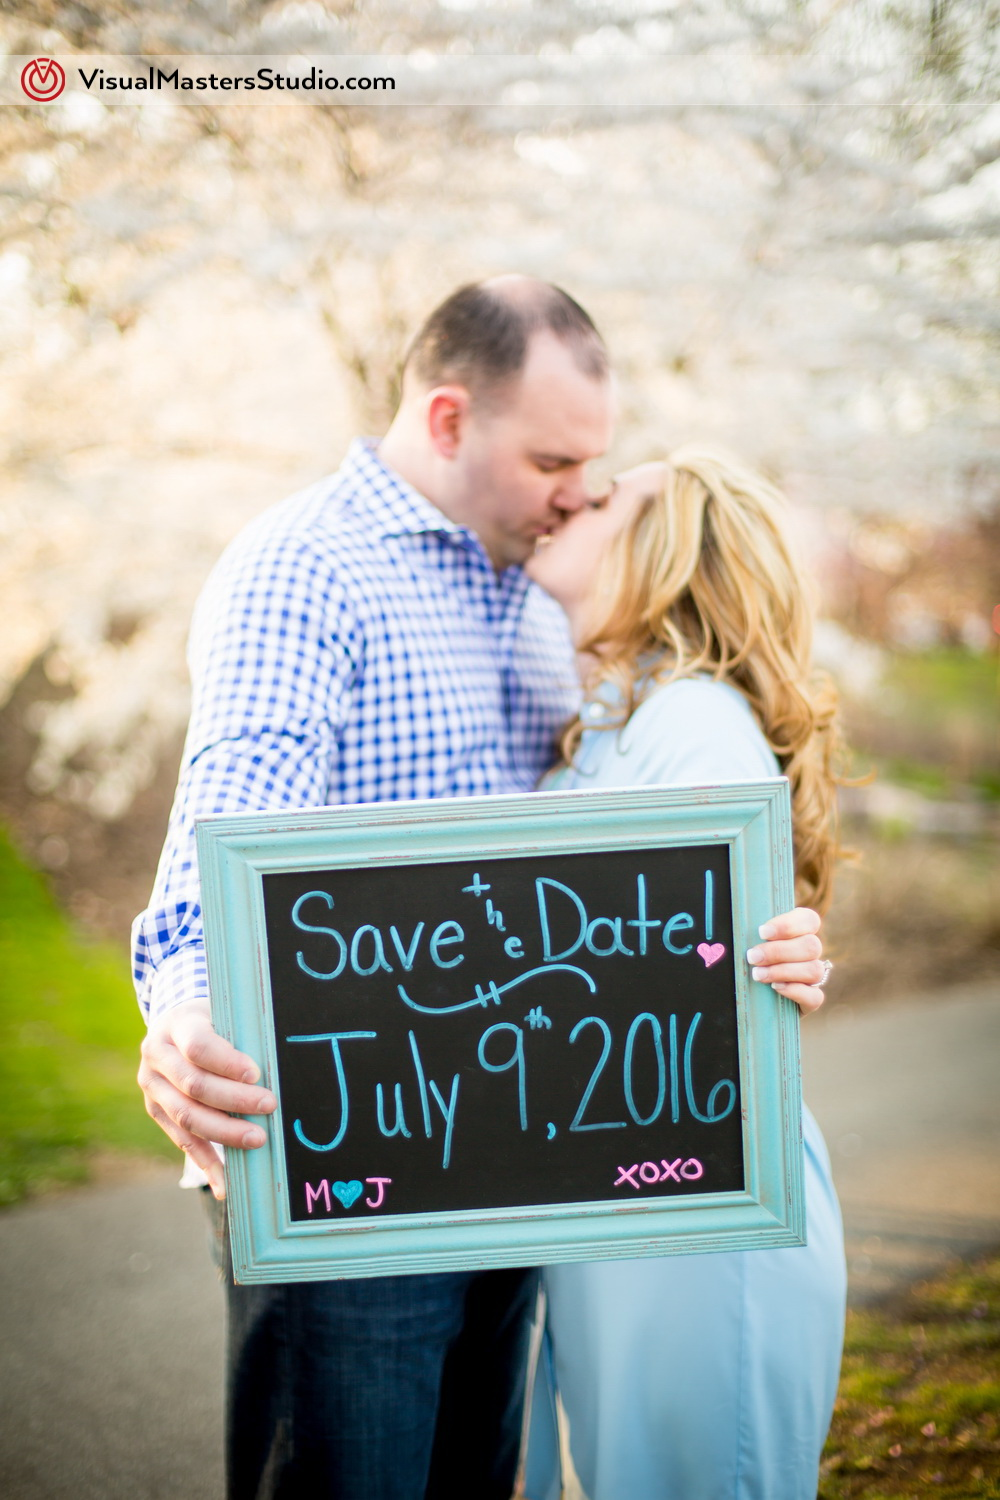 Save the Date Chalkboard Ideas by Visual Masers